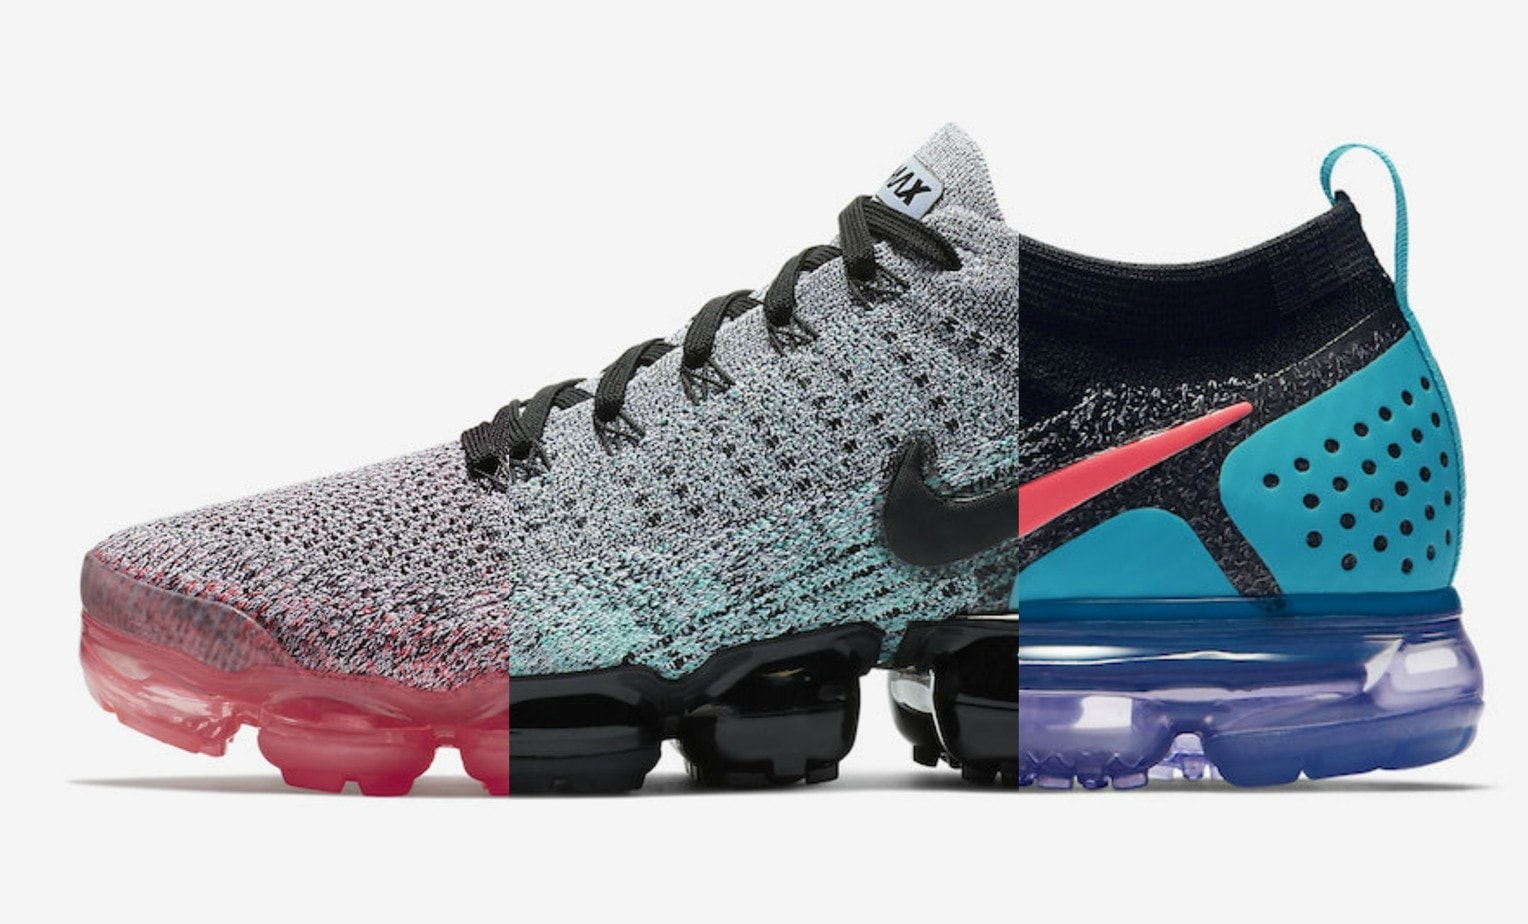 newest 653f2 6a1c6 Nike had a hit with the Vapormax Flyknit last year, which reinvented their  patented Air technology in a whole new way. Next month, as a part of Air  Max Day ...